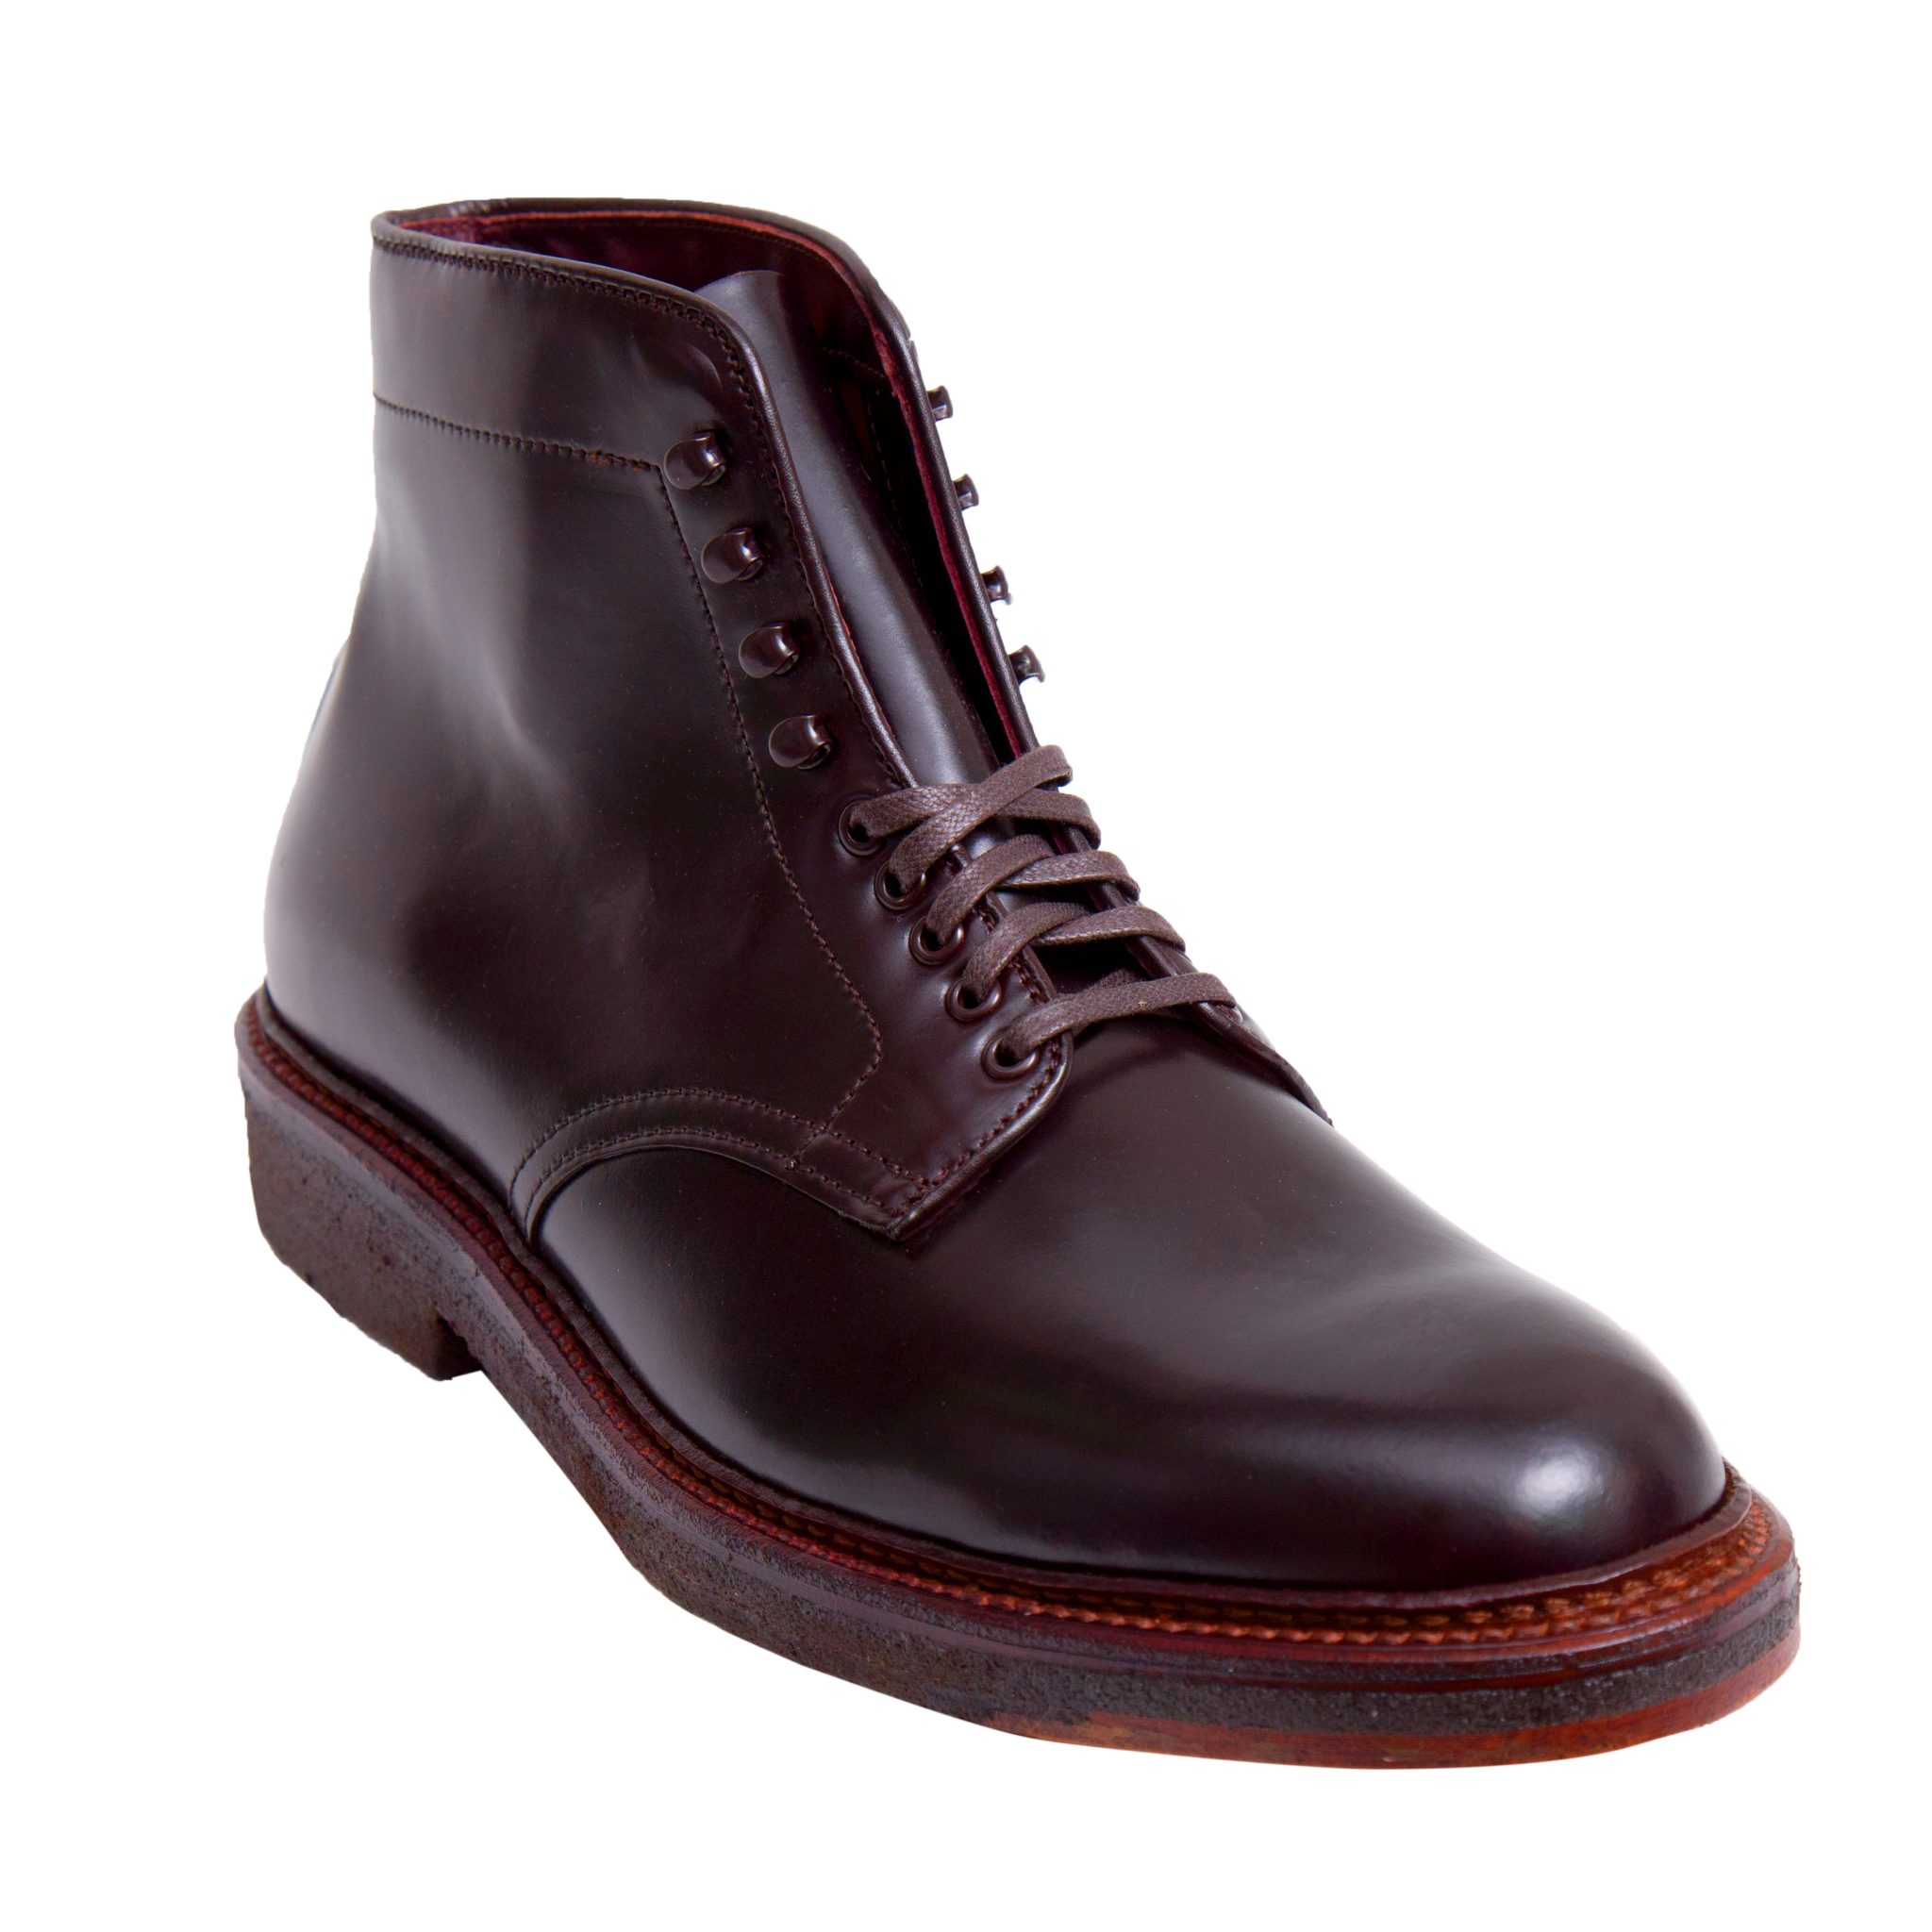 Products alden shoes madison avenue new york for The alden